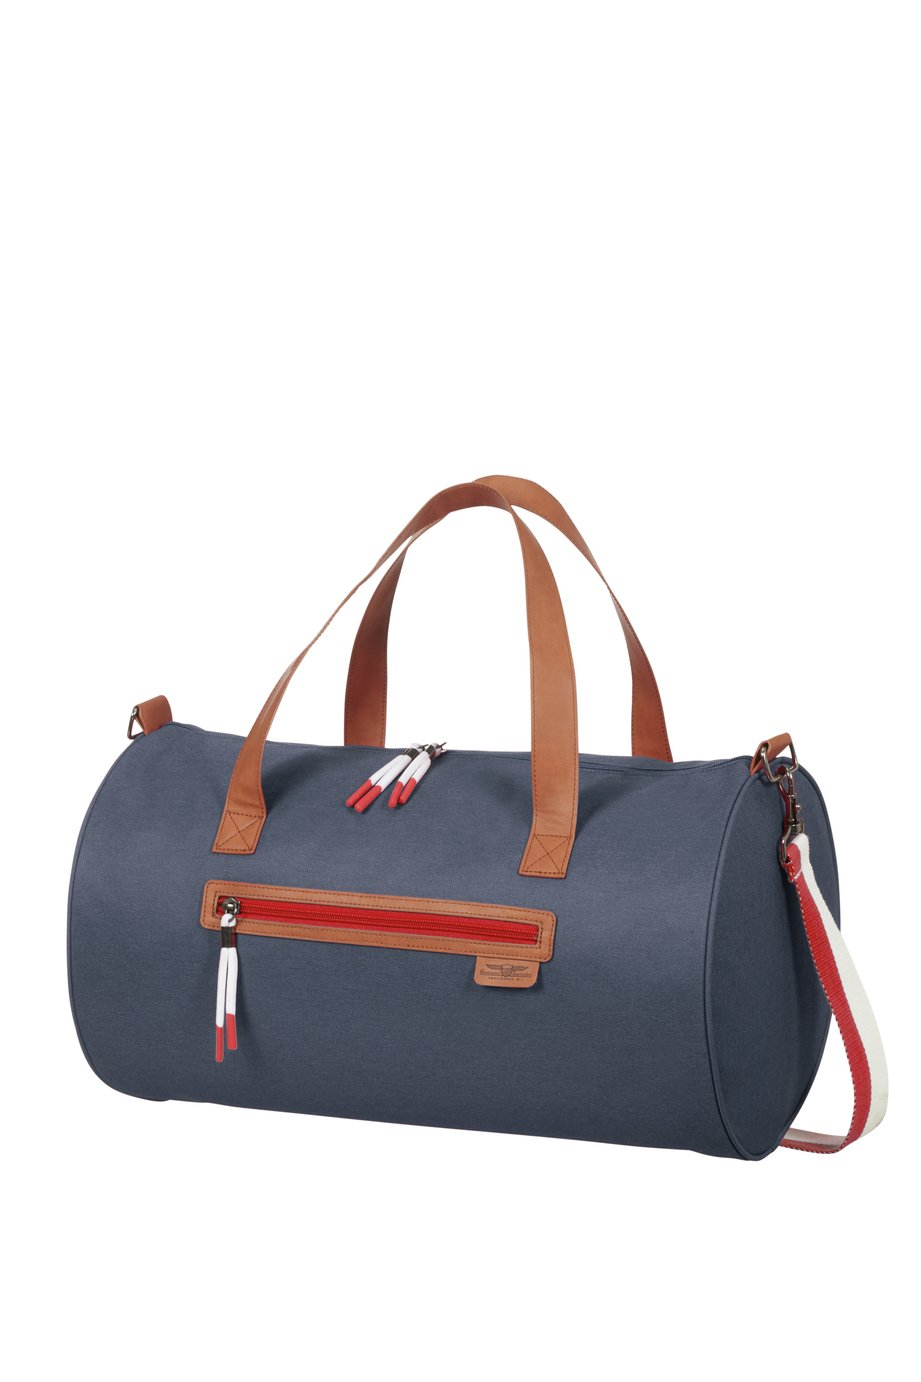 American Tourister Small Blue Holdall